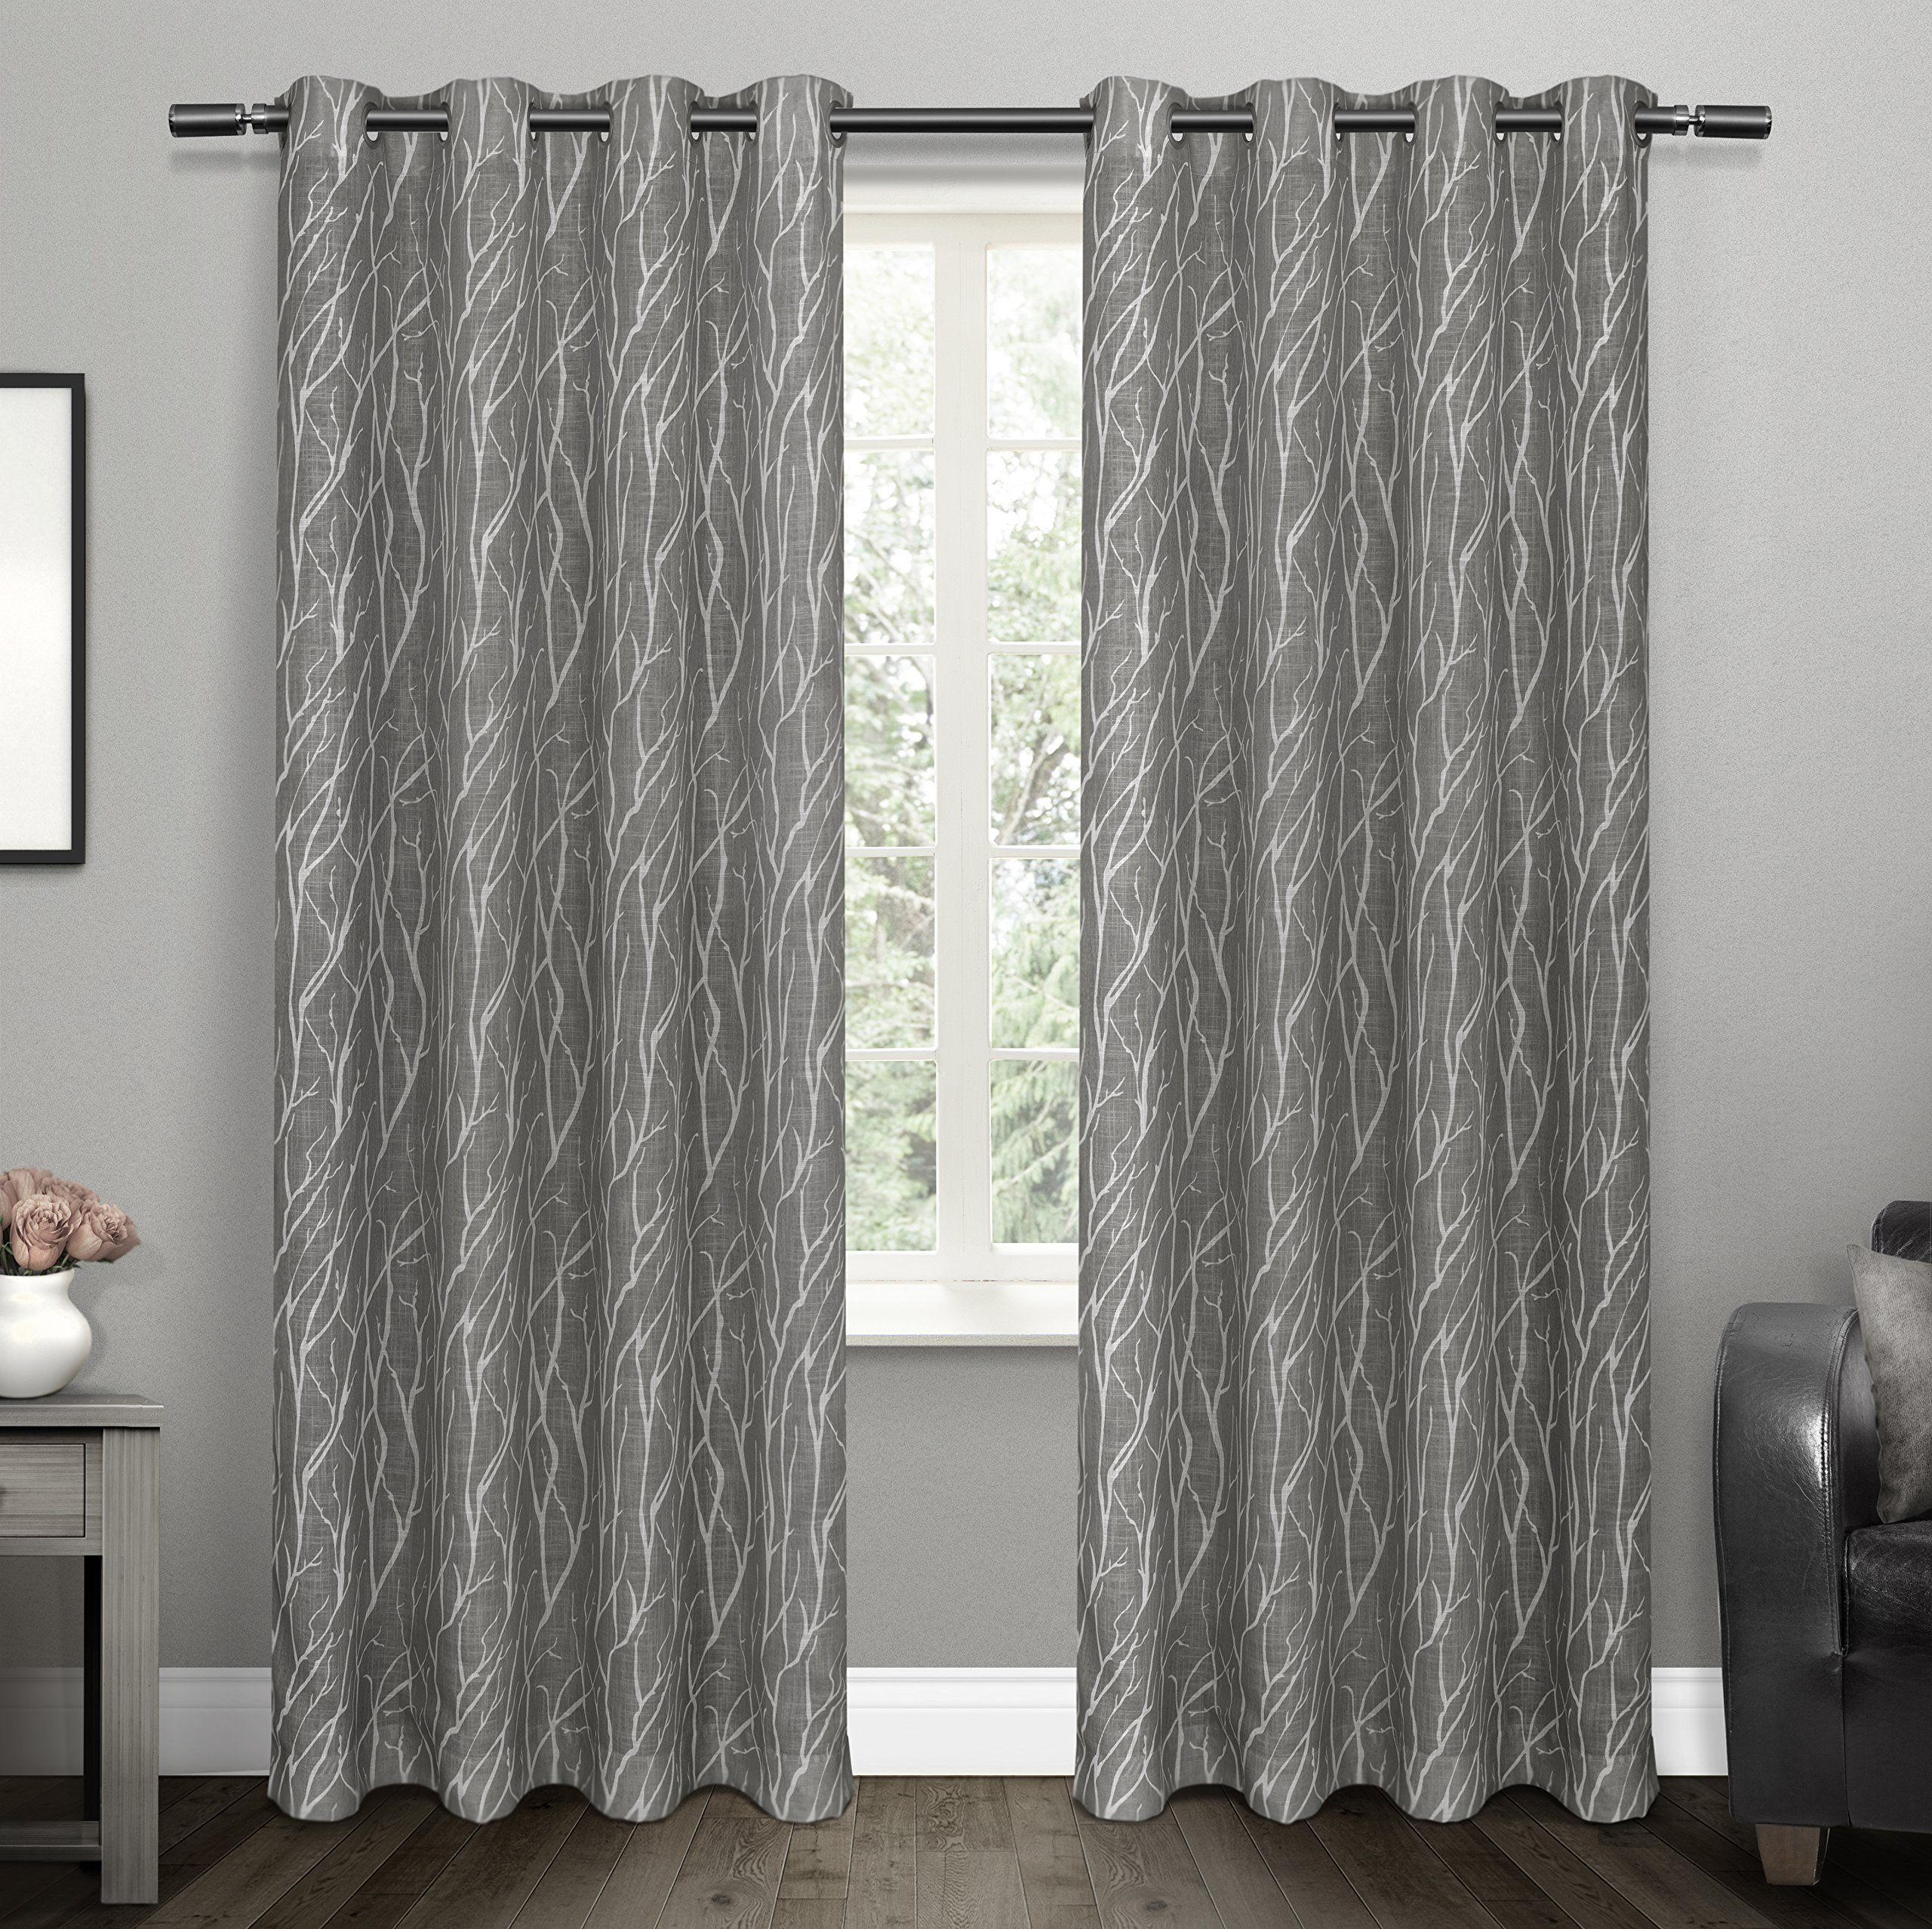 Oakdale Textured Linen Sheer Grommet Top Curtain Panel Pairs Inside Widely Used Details About Exclusive Home Curtains Oakdale Sheer Grommet Top Window  Curtain Panel Pair, (View 11 of 20)